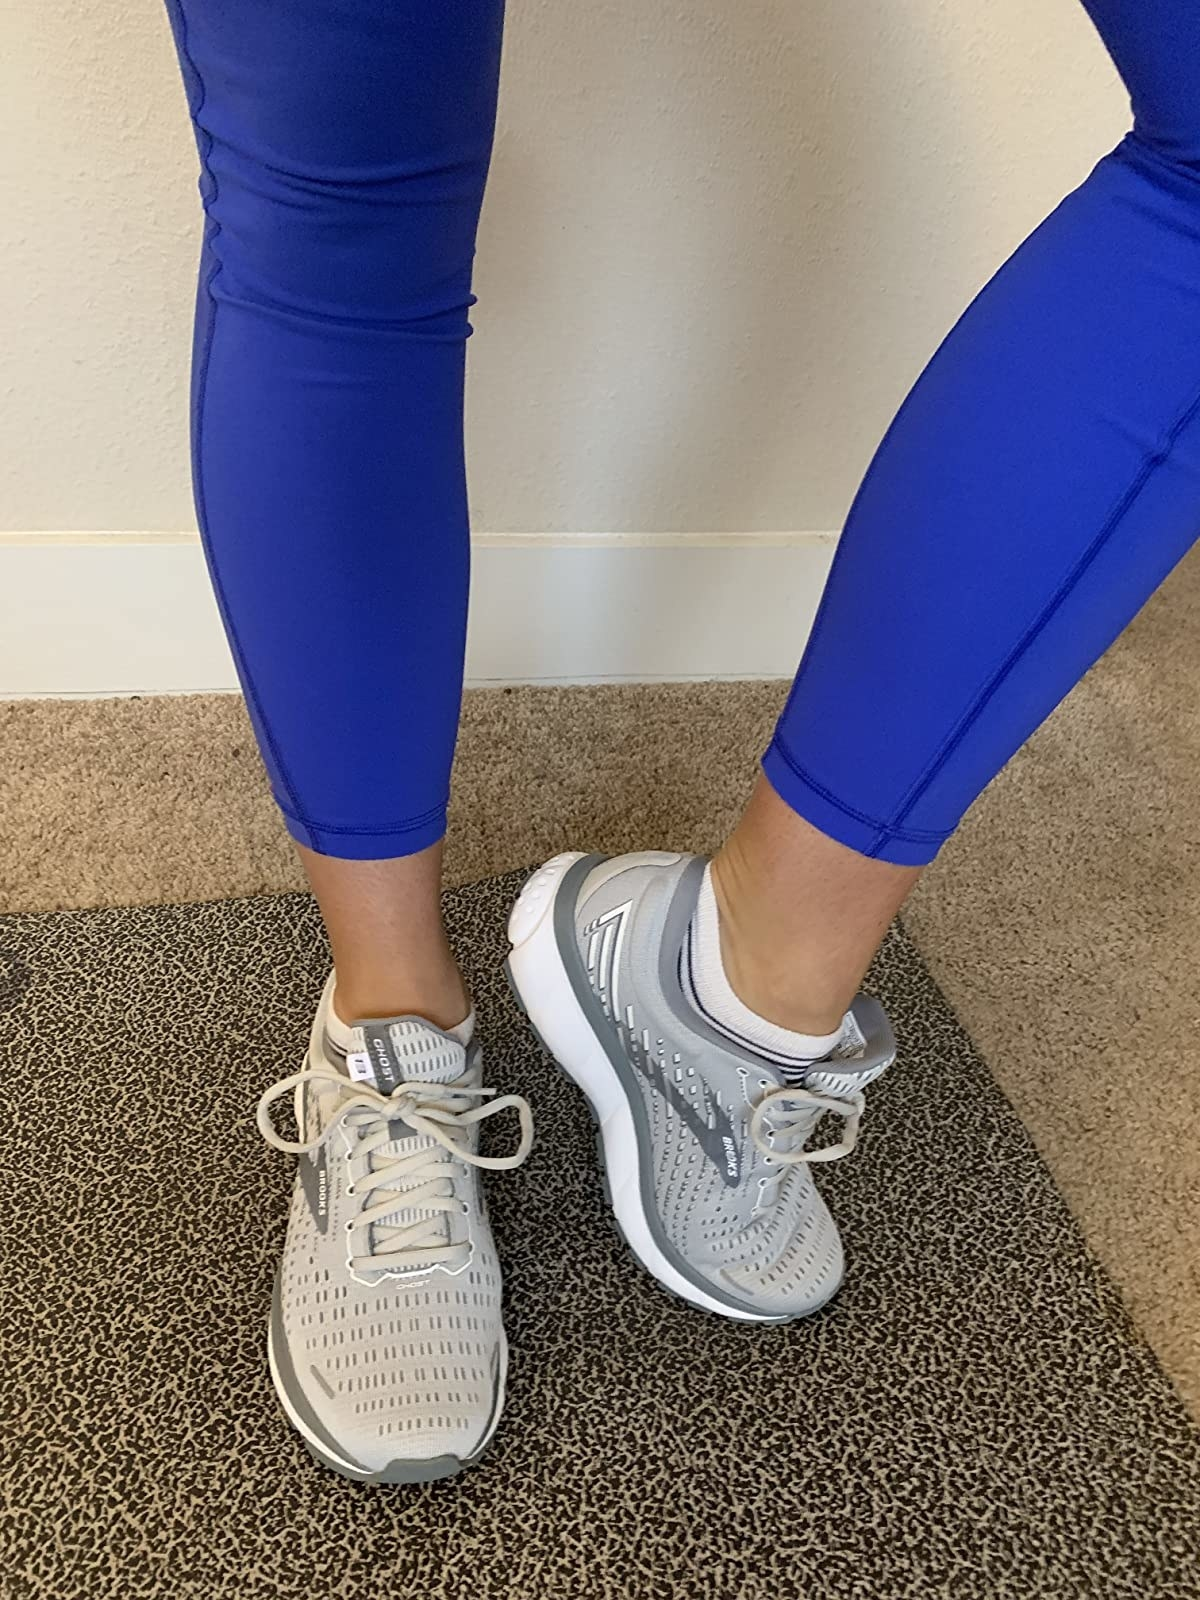 A reviewer wearing the gray sneakers that have matching laces and are covered in breathable mesh